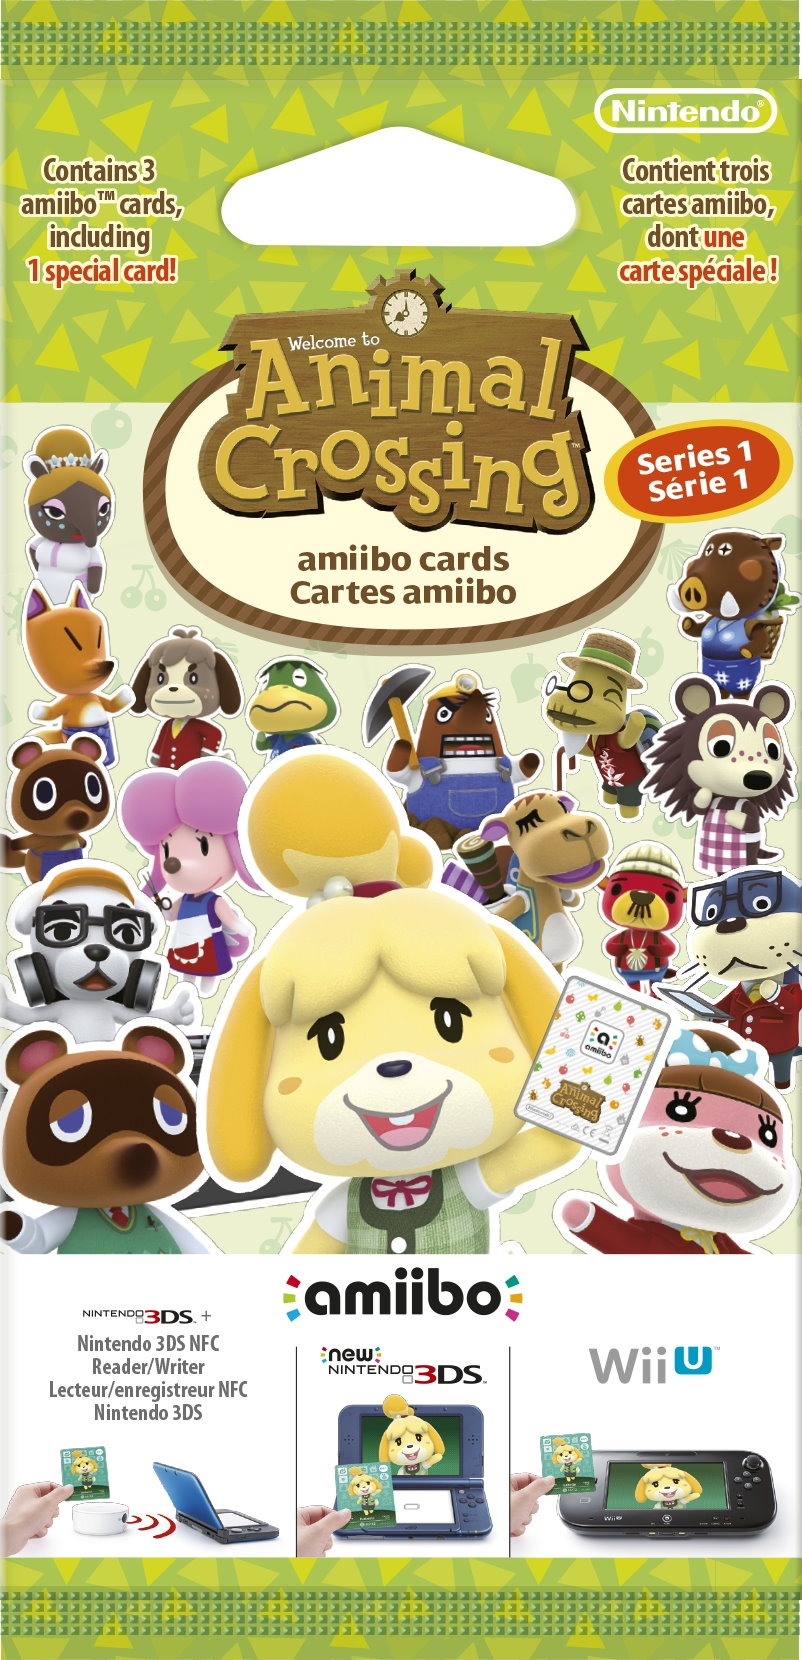 Japan: 312,000 Packs Of Animal Crossing Amiibo Cards Have BeenSold